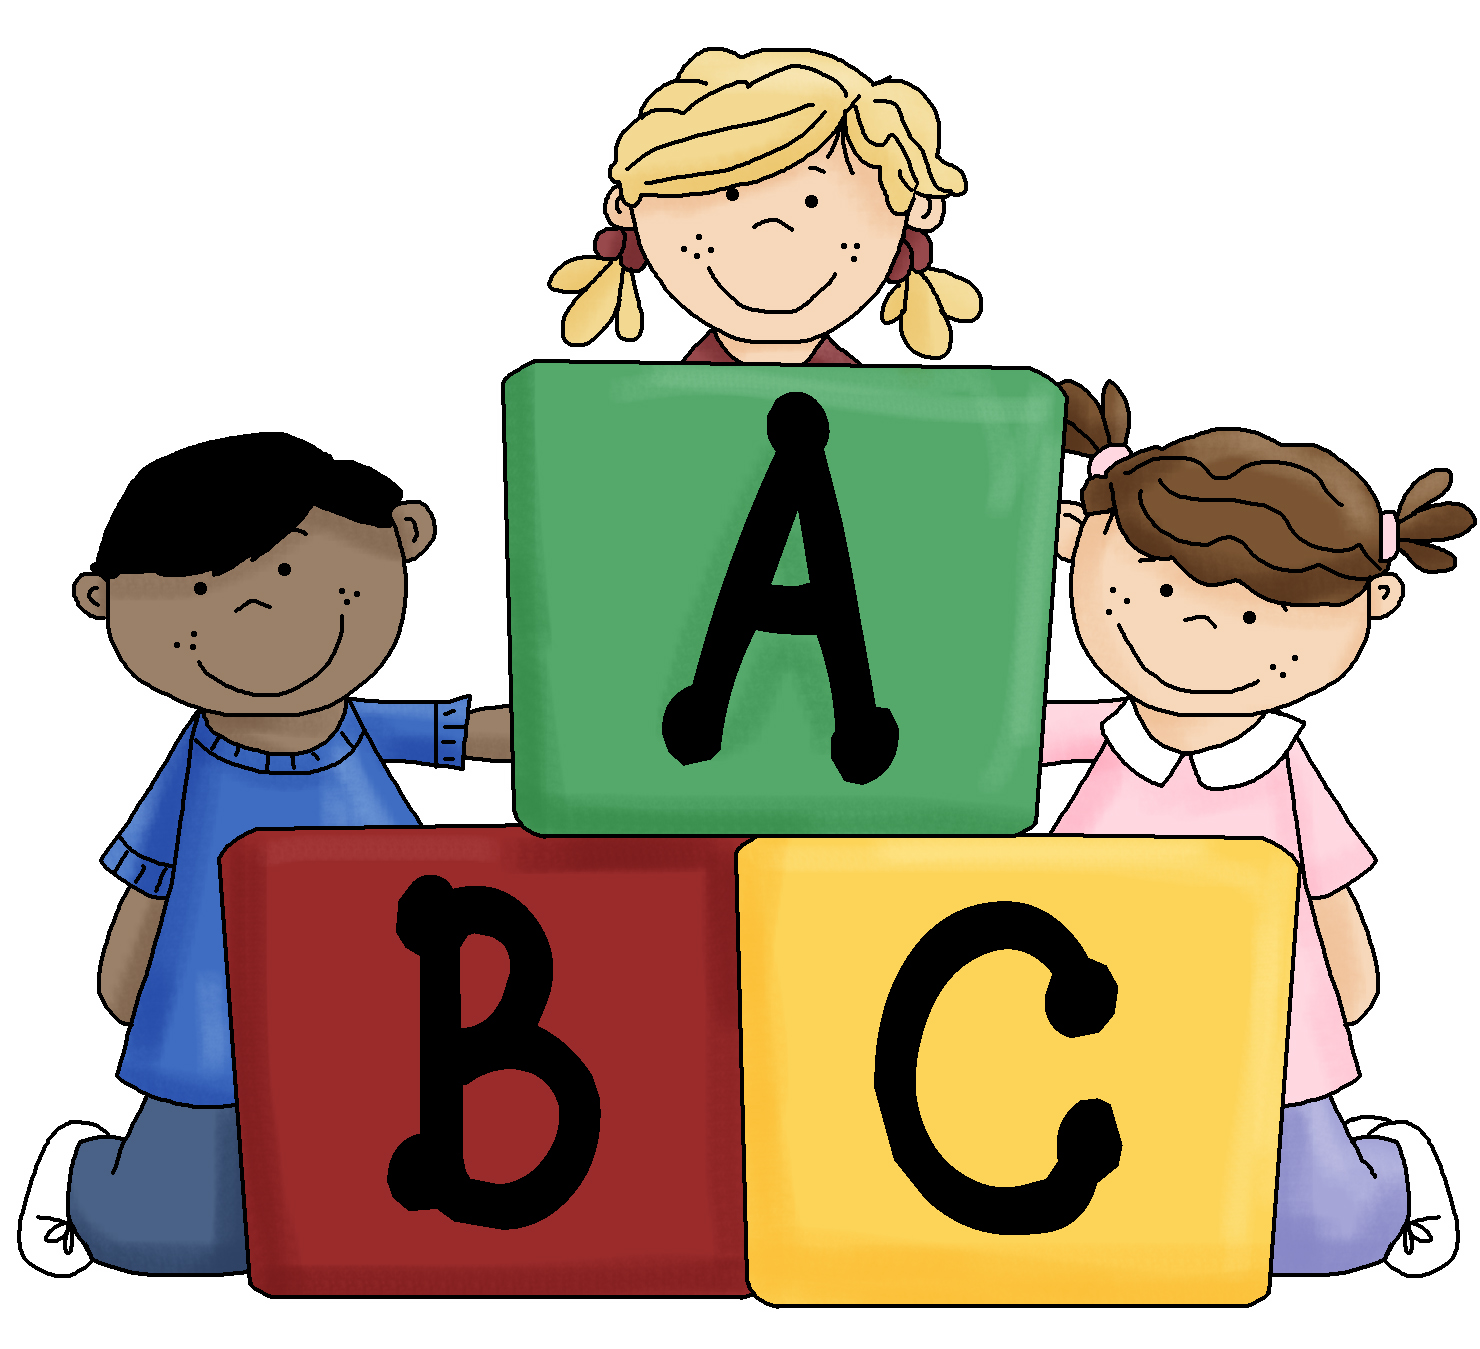 Blocks kid galleries related. Abc block clipart